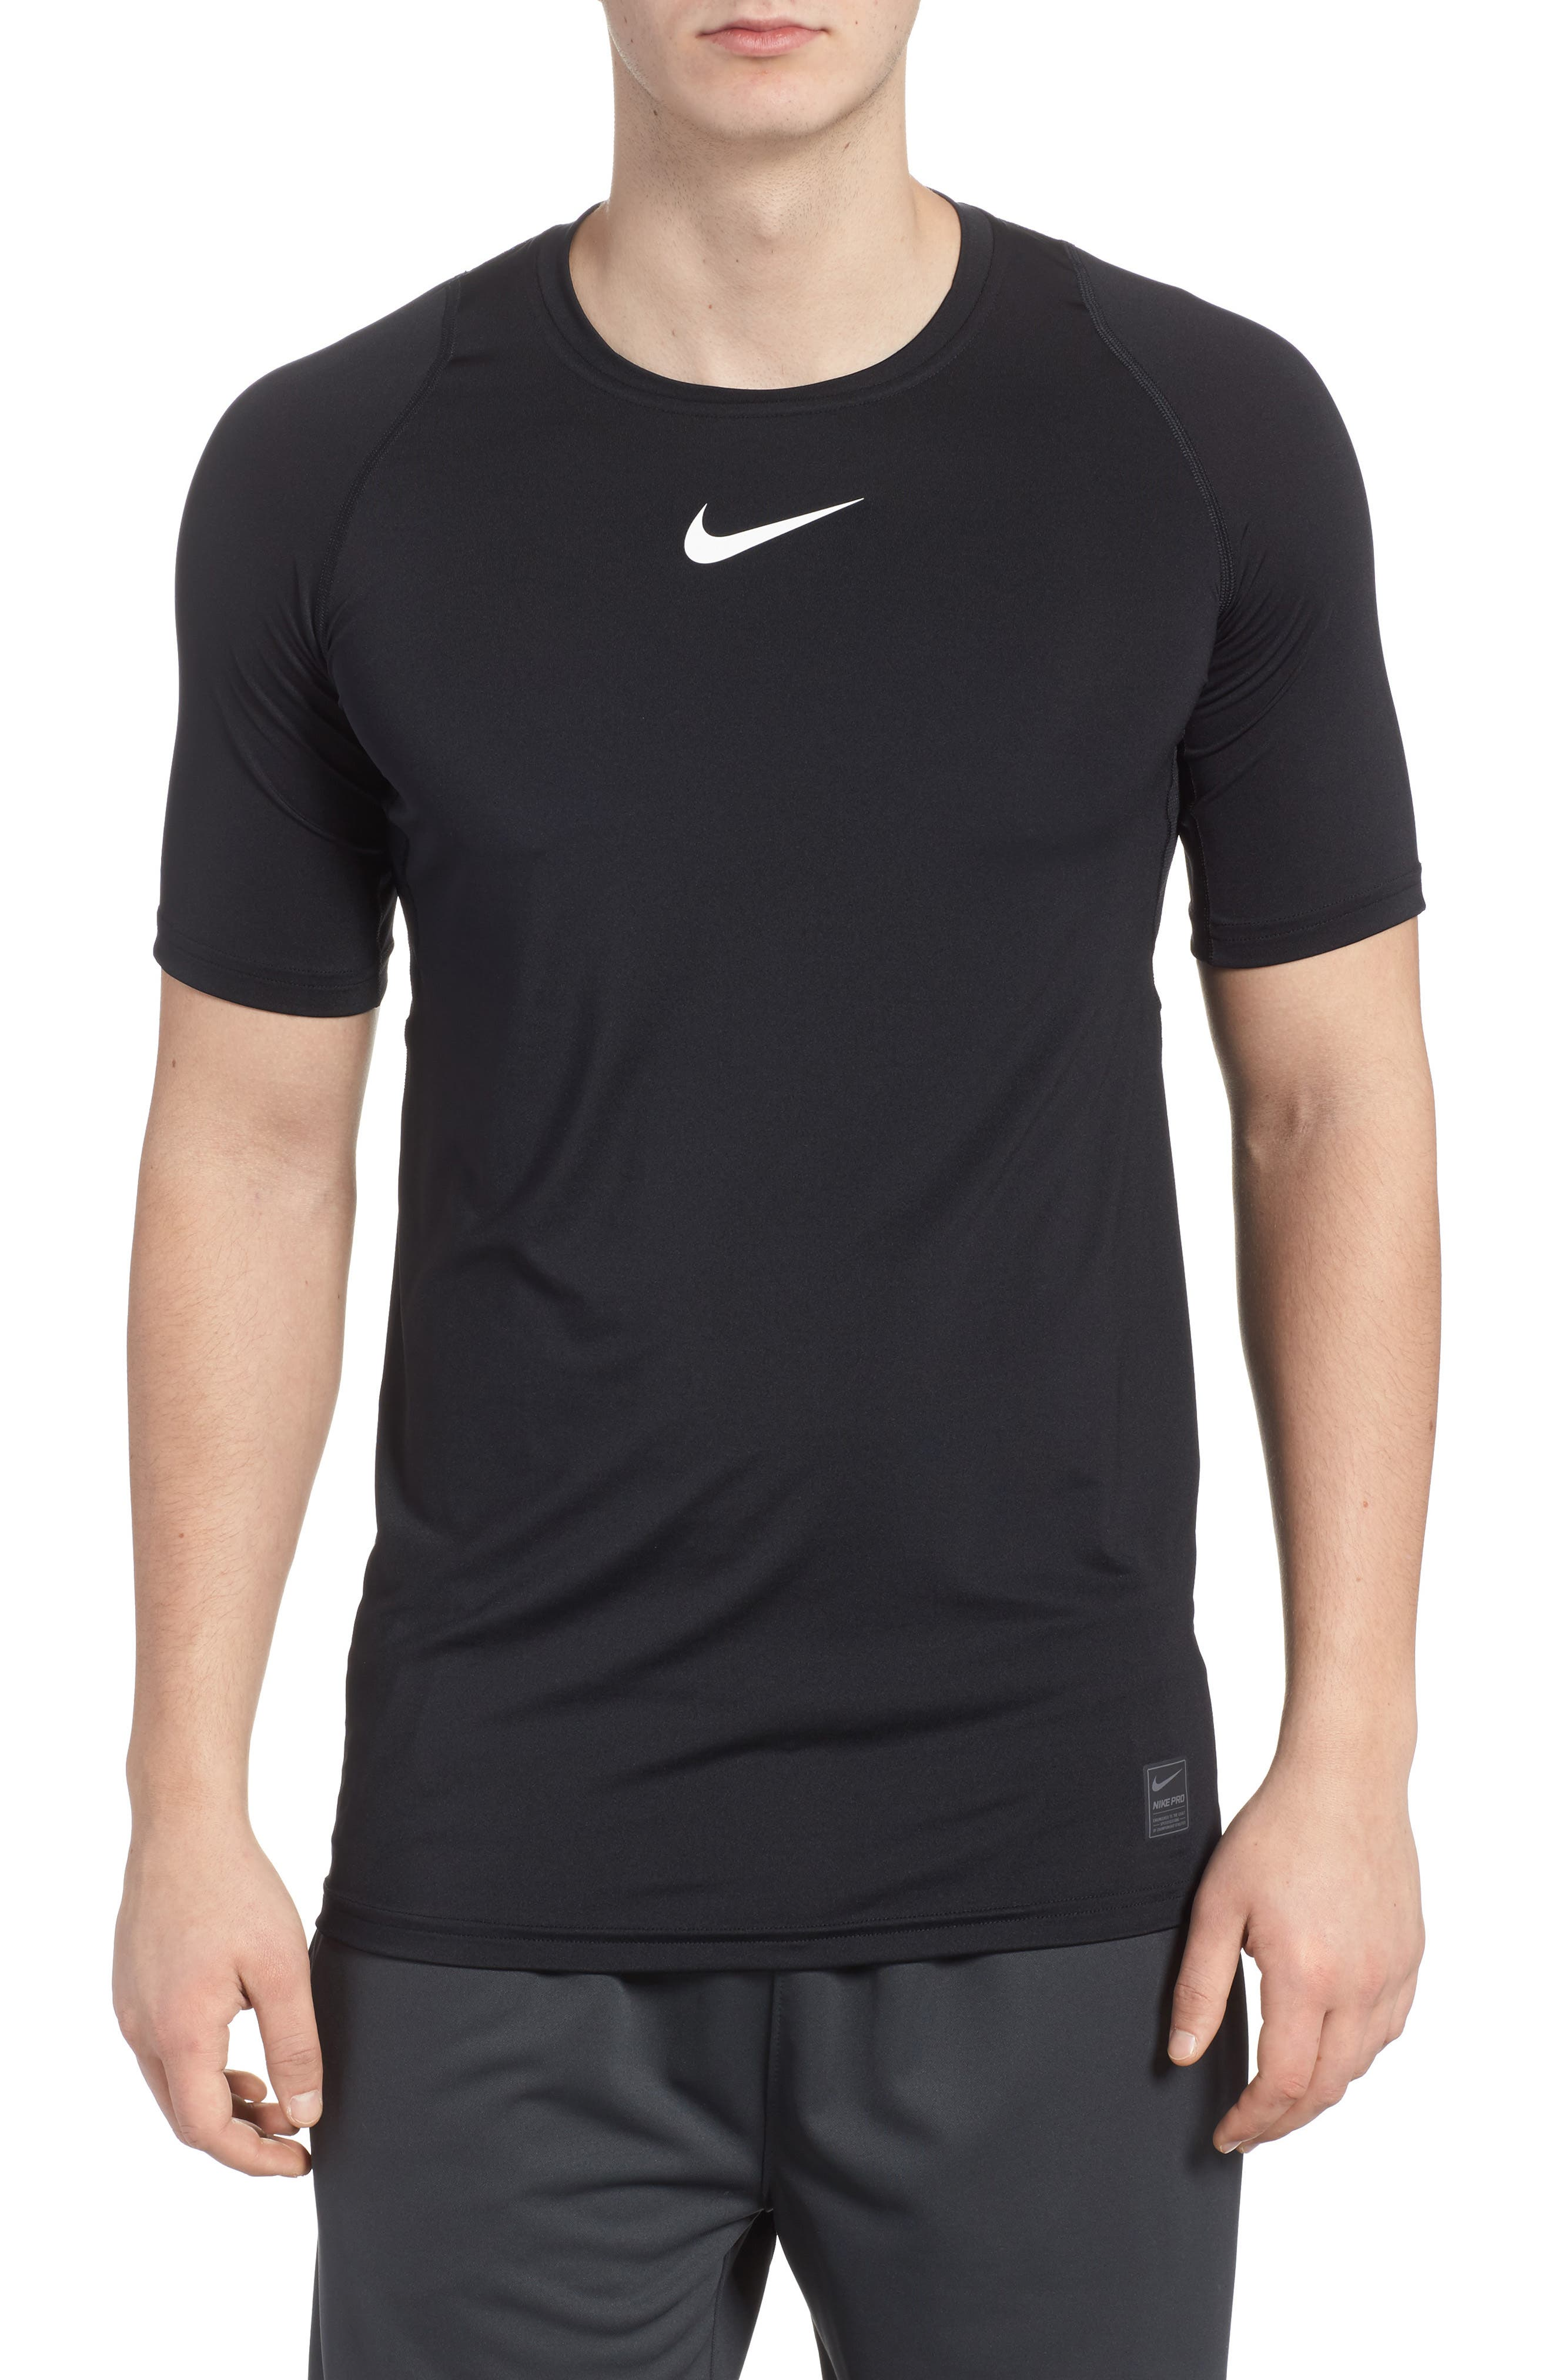 Pro Fitted T-Shirt,                         Main,                         color, Black/White/White